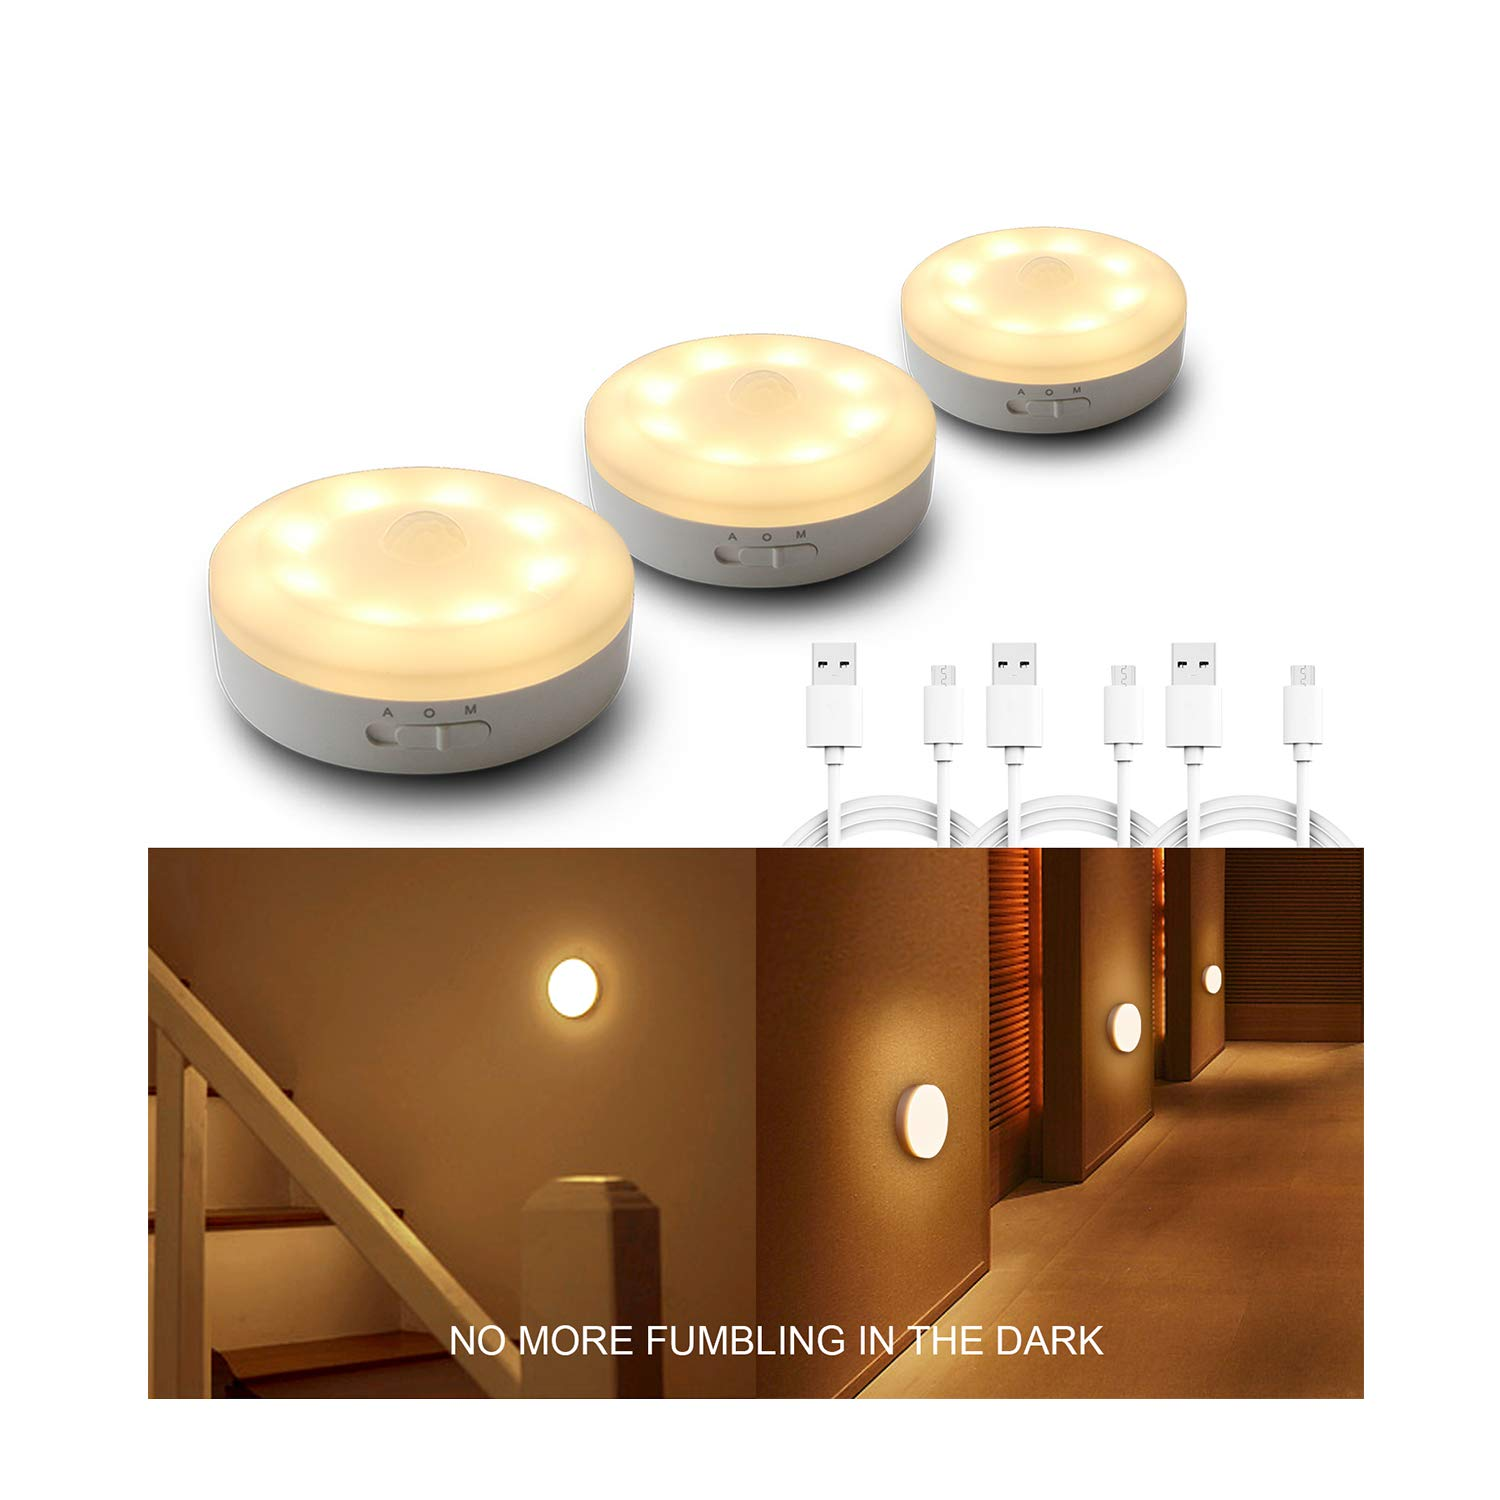 Rechargeable Motion Sensor Light 1000mAH LED Puck Lights, Stick Anywhere Light, Cordless Closet Light, Automatic Under Cabinet Lighting for Counter,Pantry,Wardrobe,Hallway,Stairs,Warm White 3 Pack by WOBANE